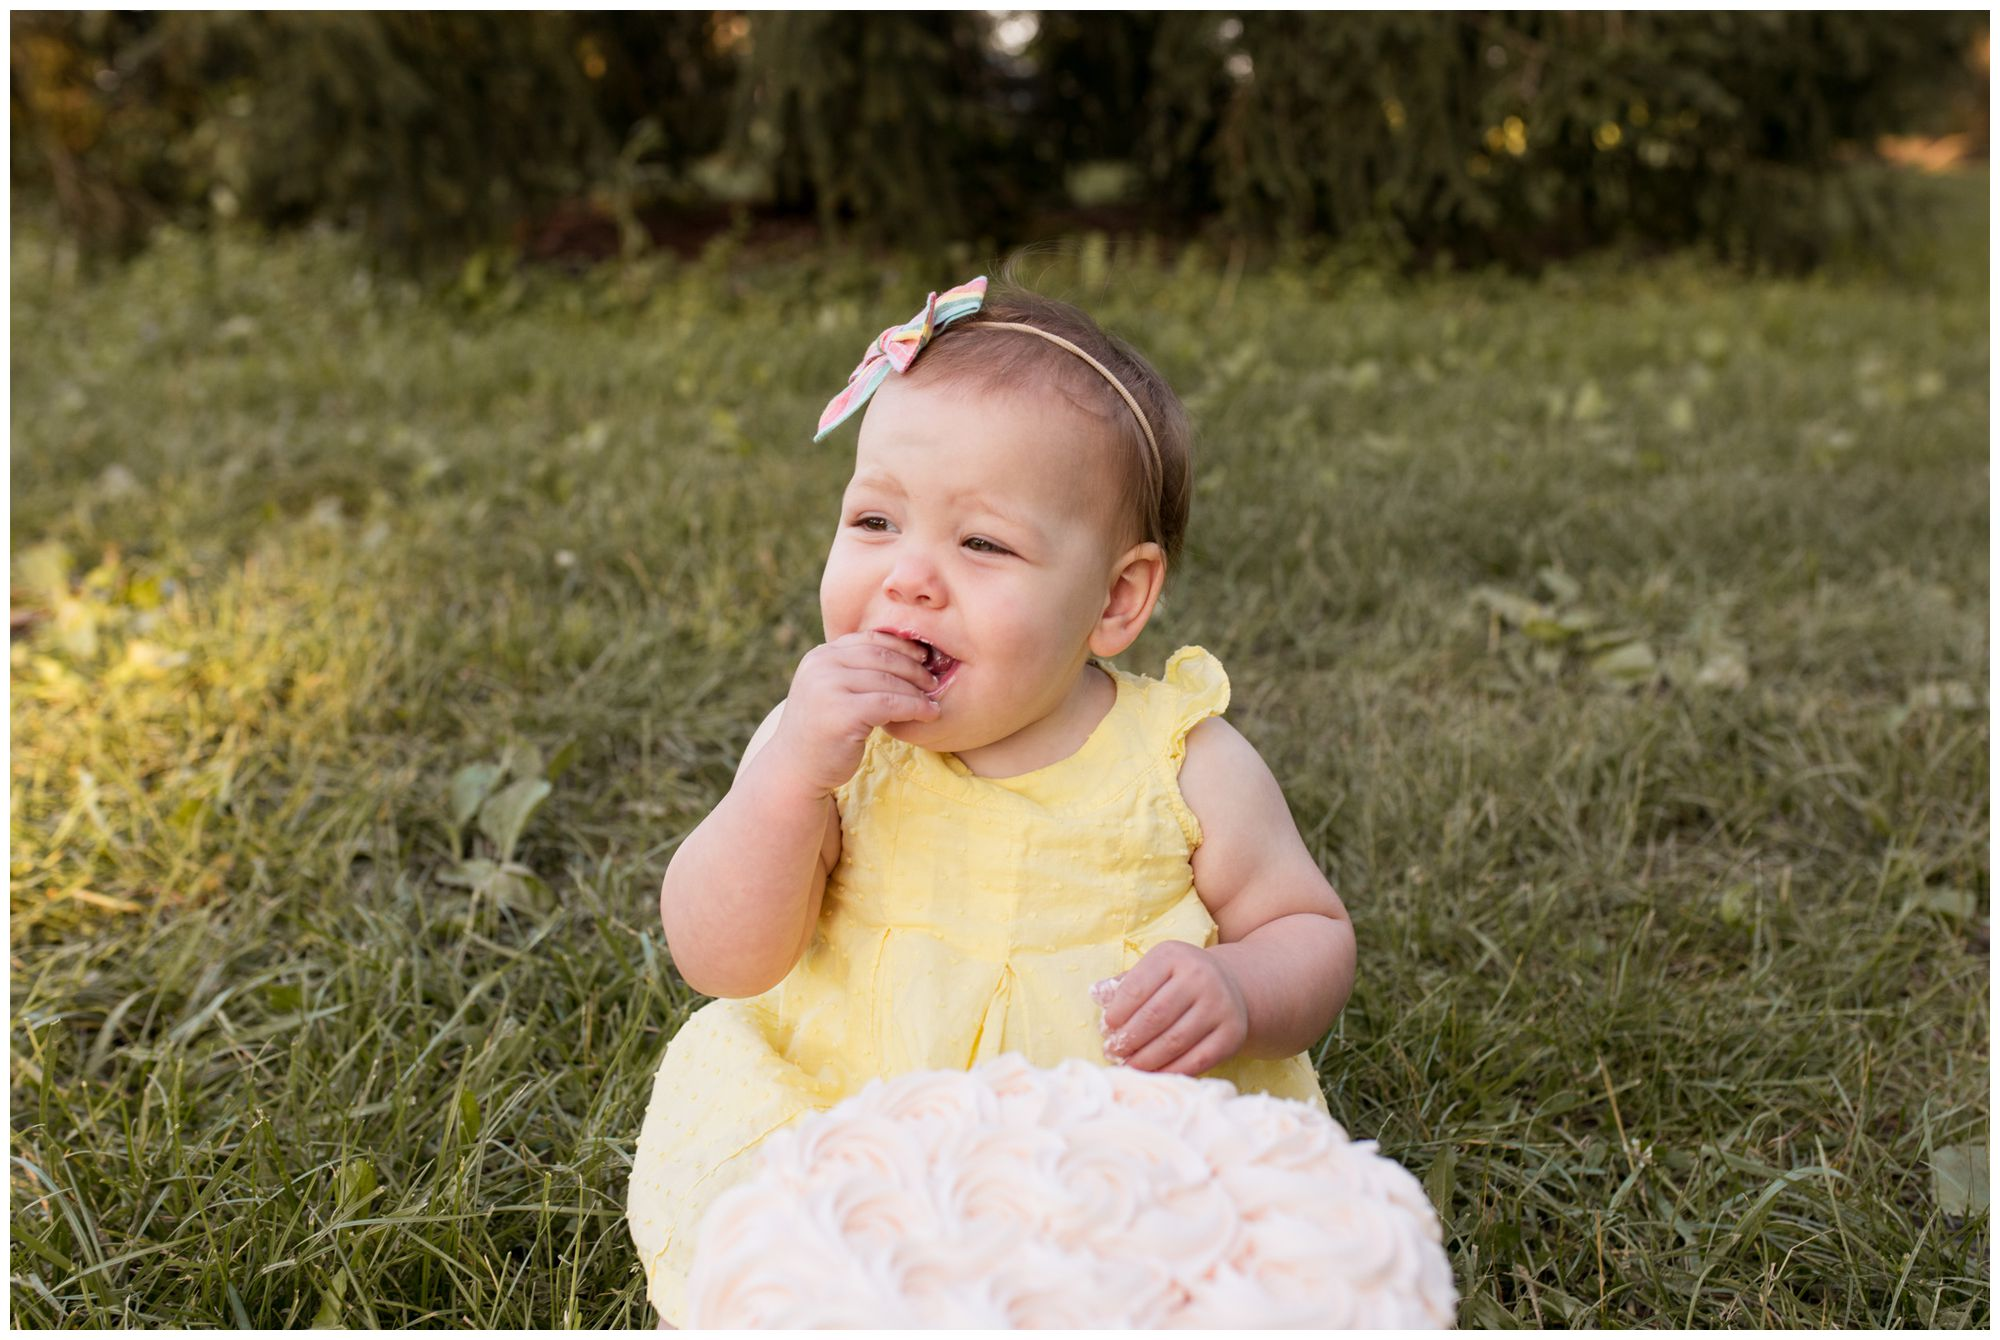 first birthday cake smash at Coxhall Gardens in Carmel, Indiana